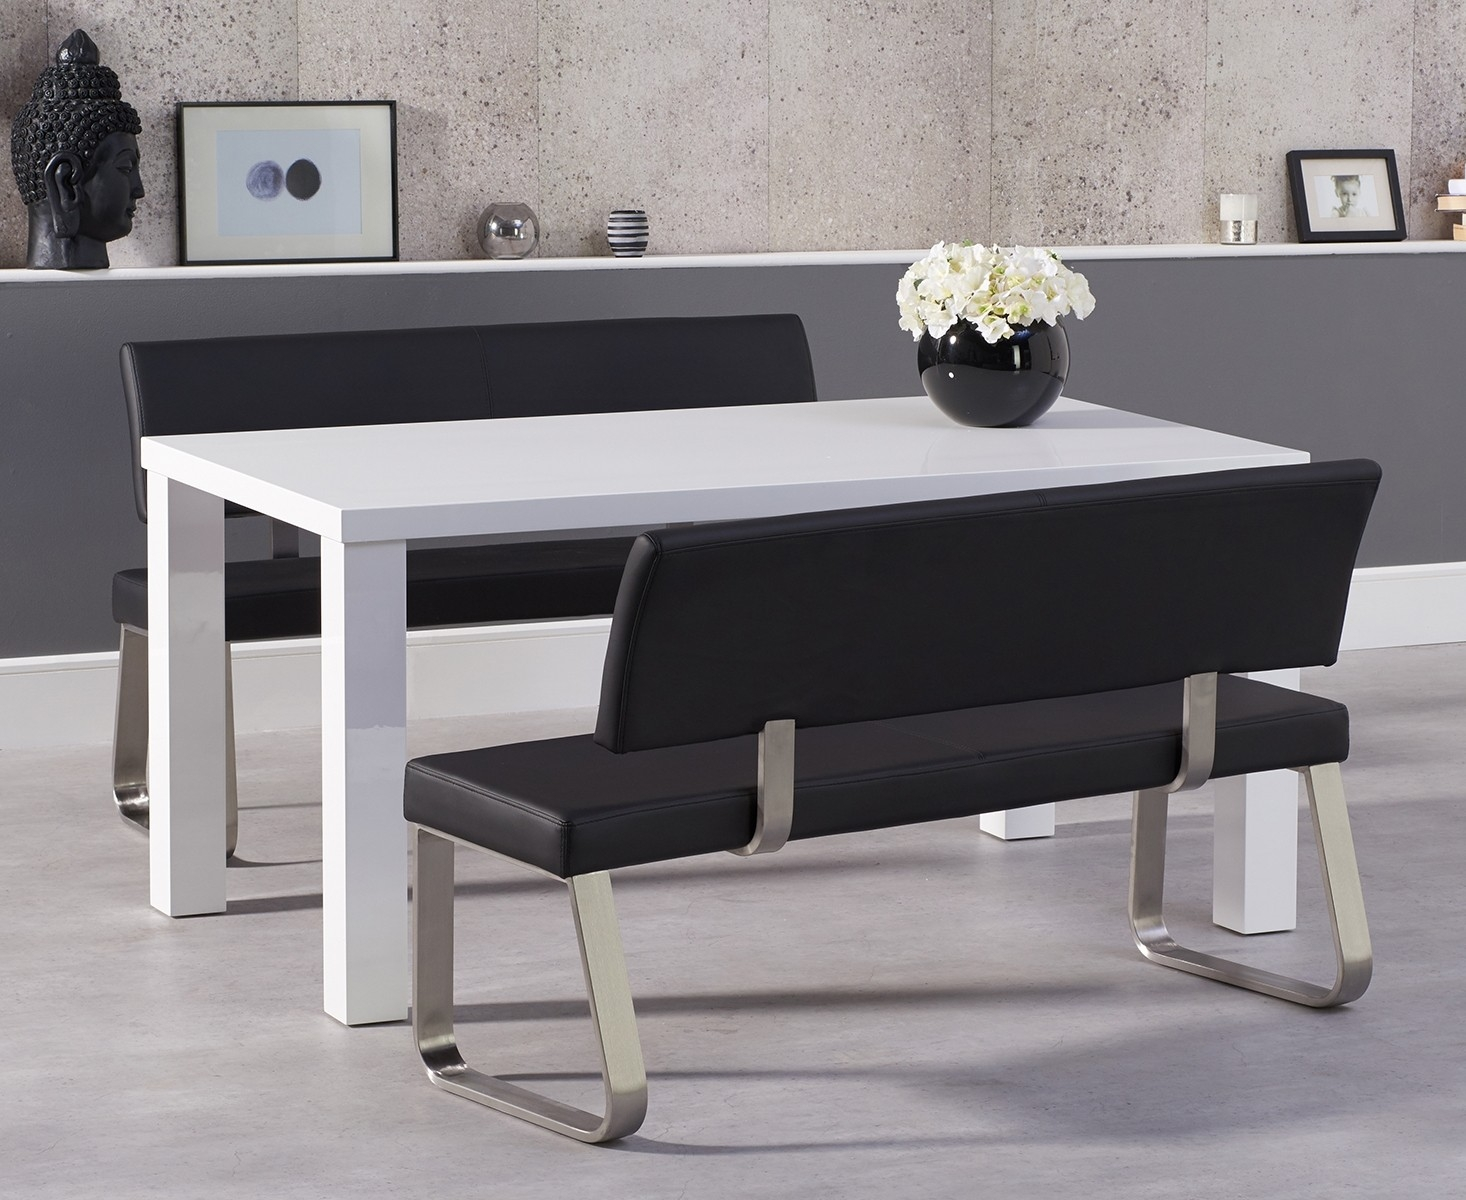 An image of Atlanta 160cm White High Gloss Dining Table with Black Malaga Benches